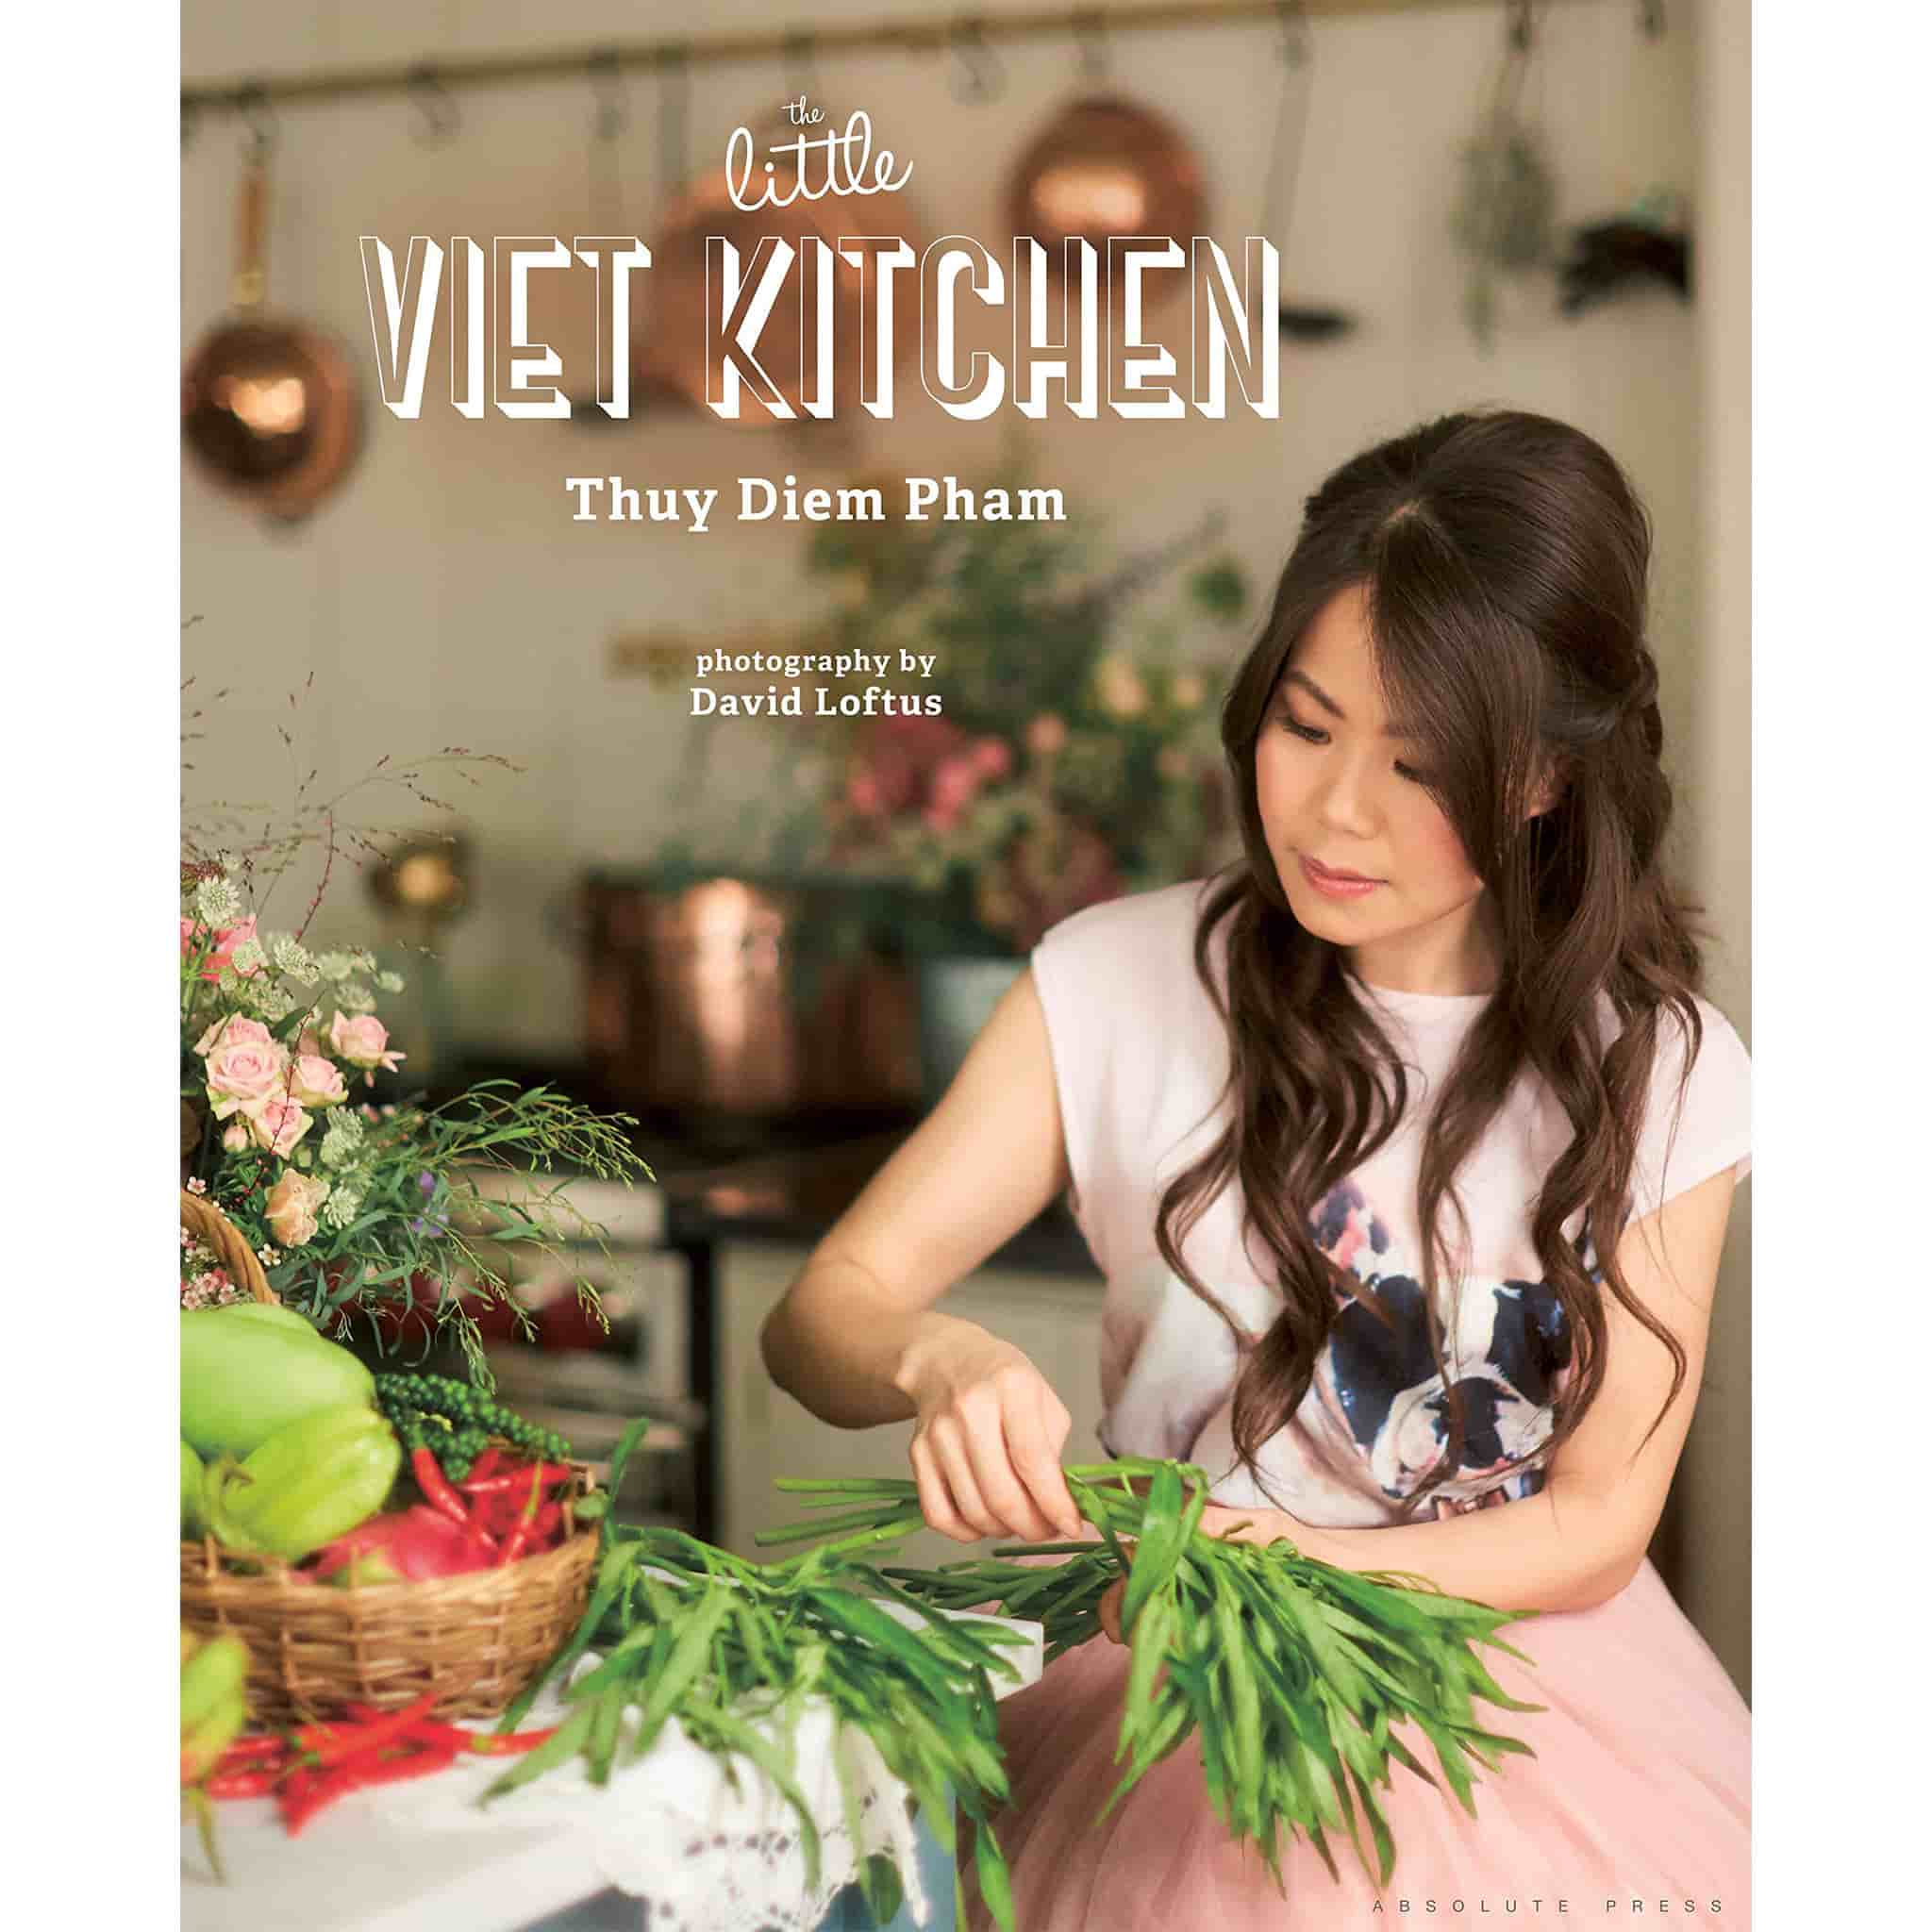 The Little Viet Kitchen by Thuy Diem Pham